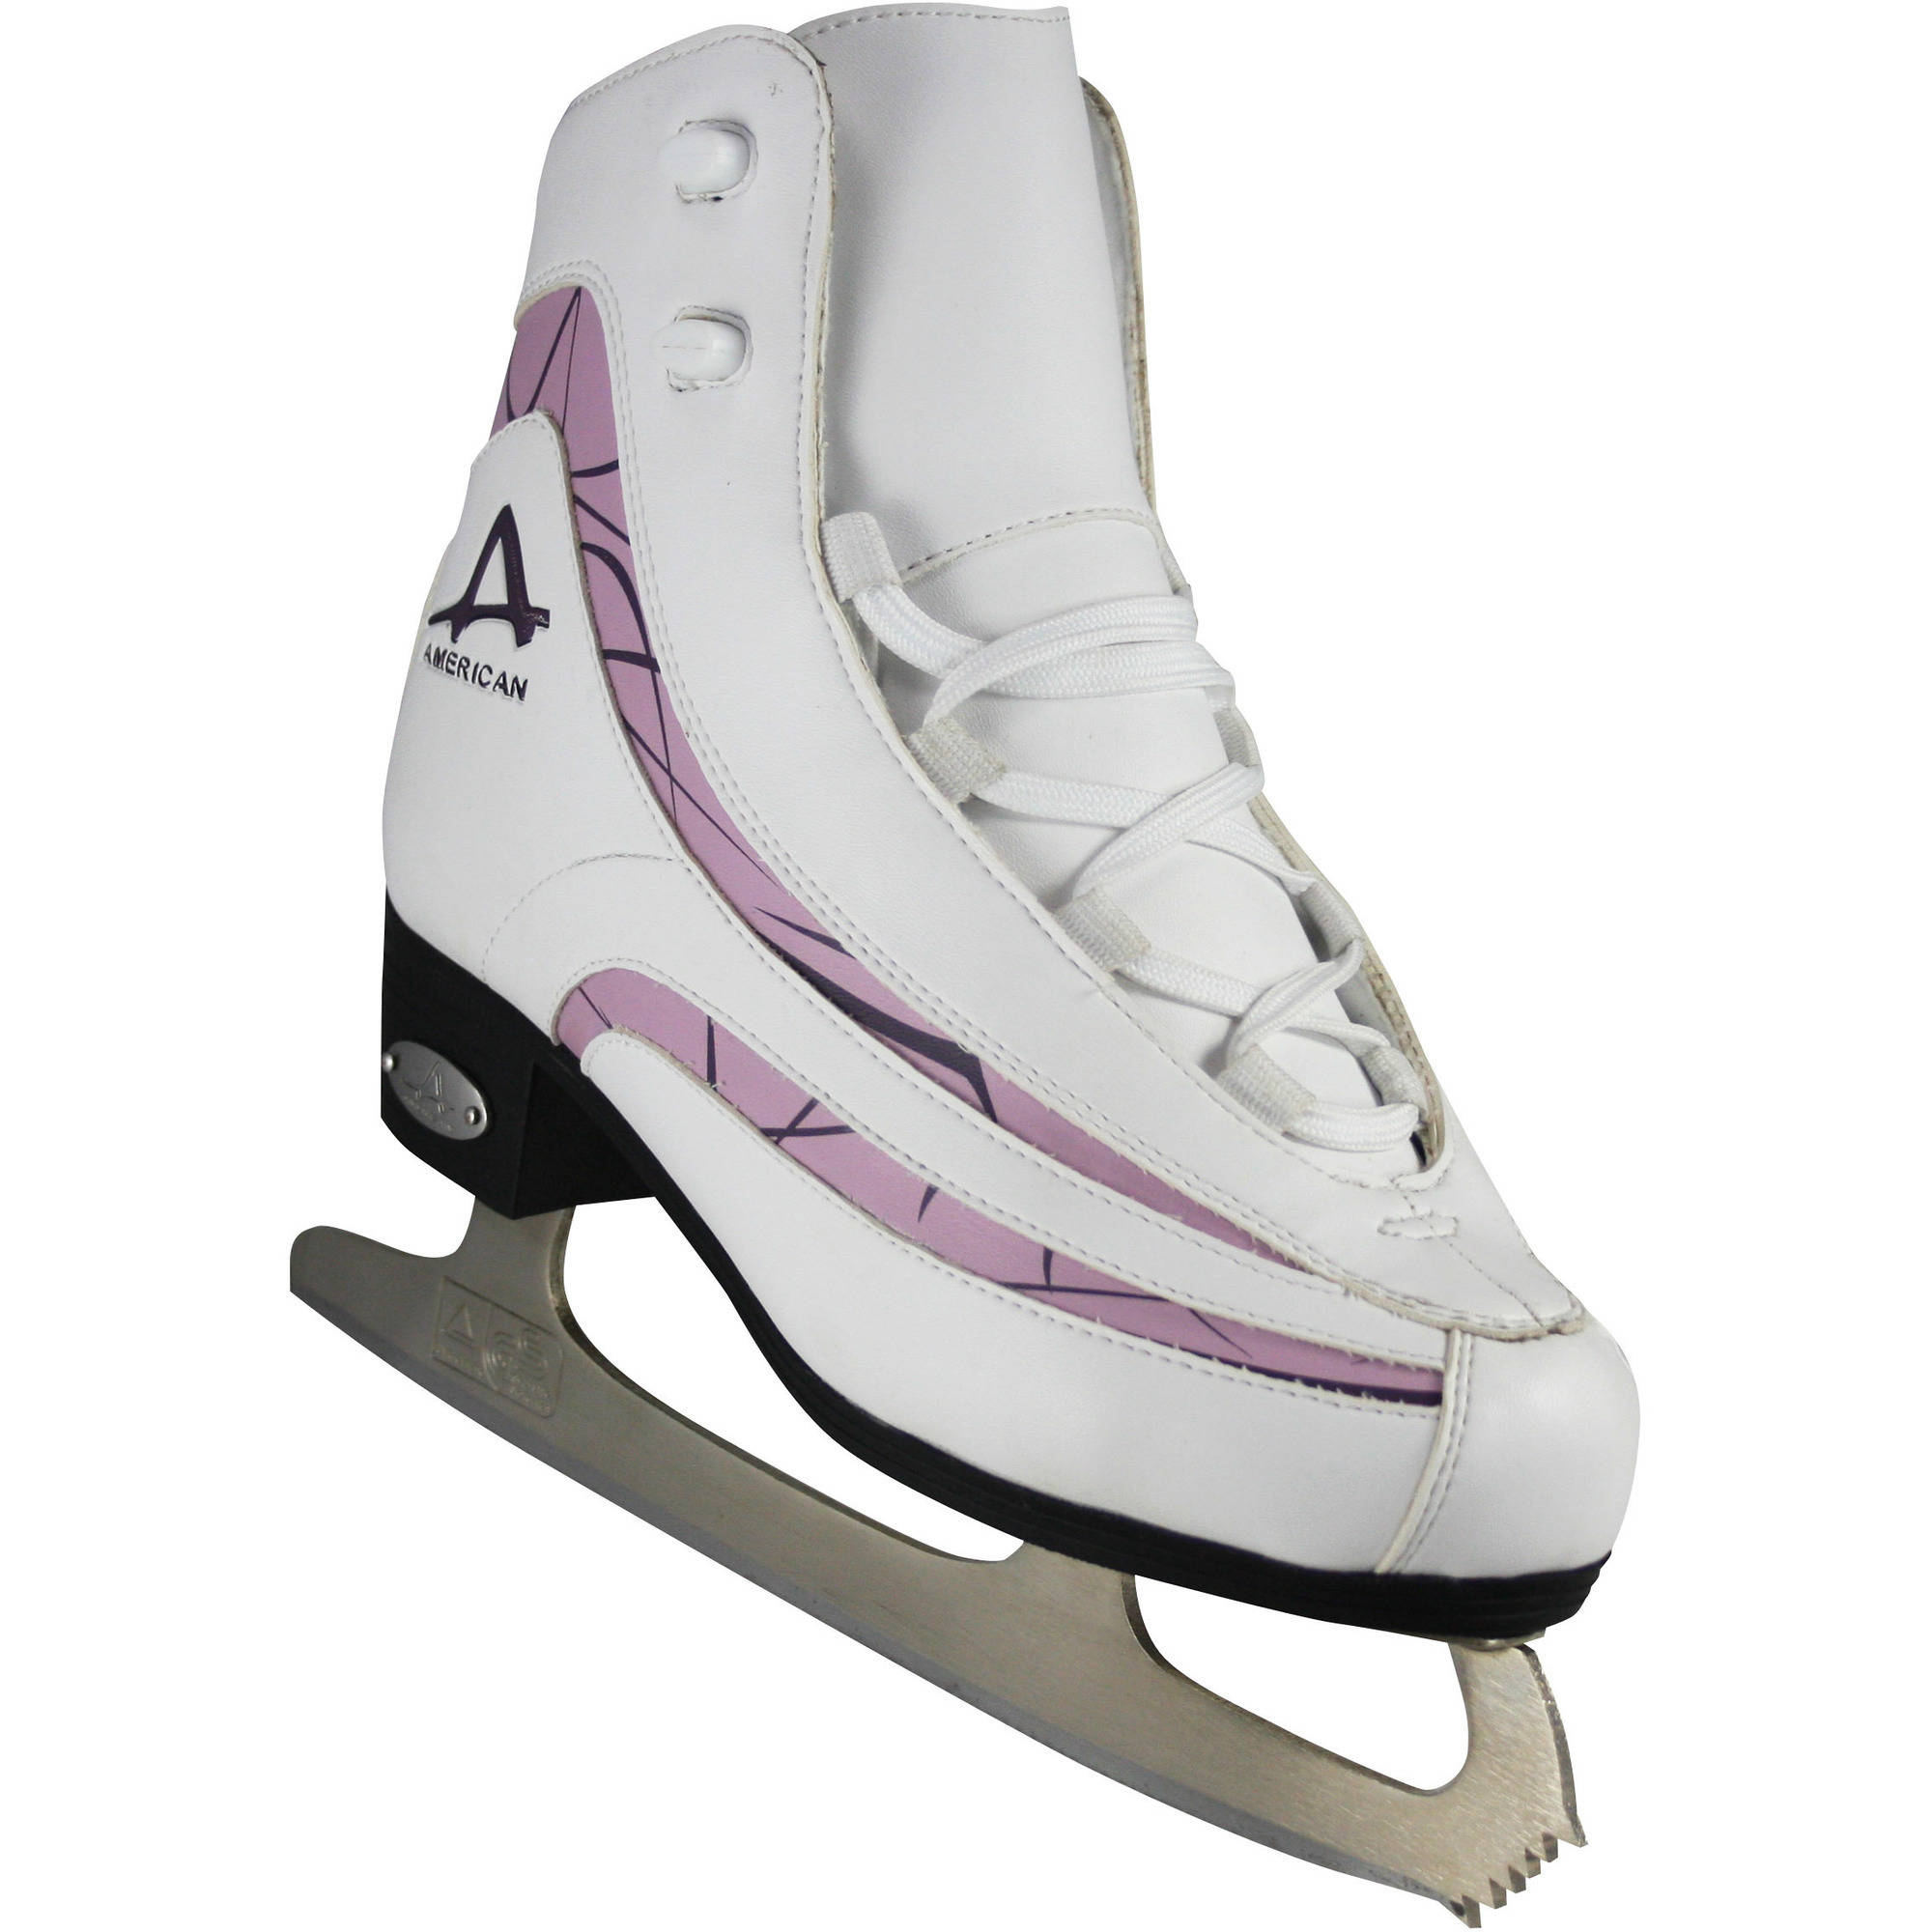 American Women's Softboot Figure Skates by